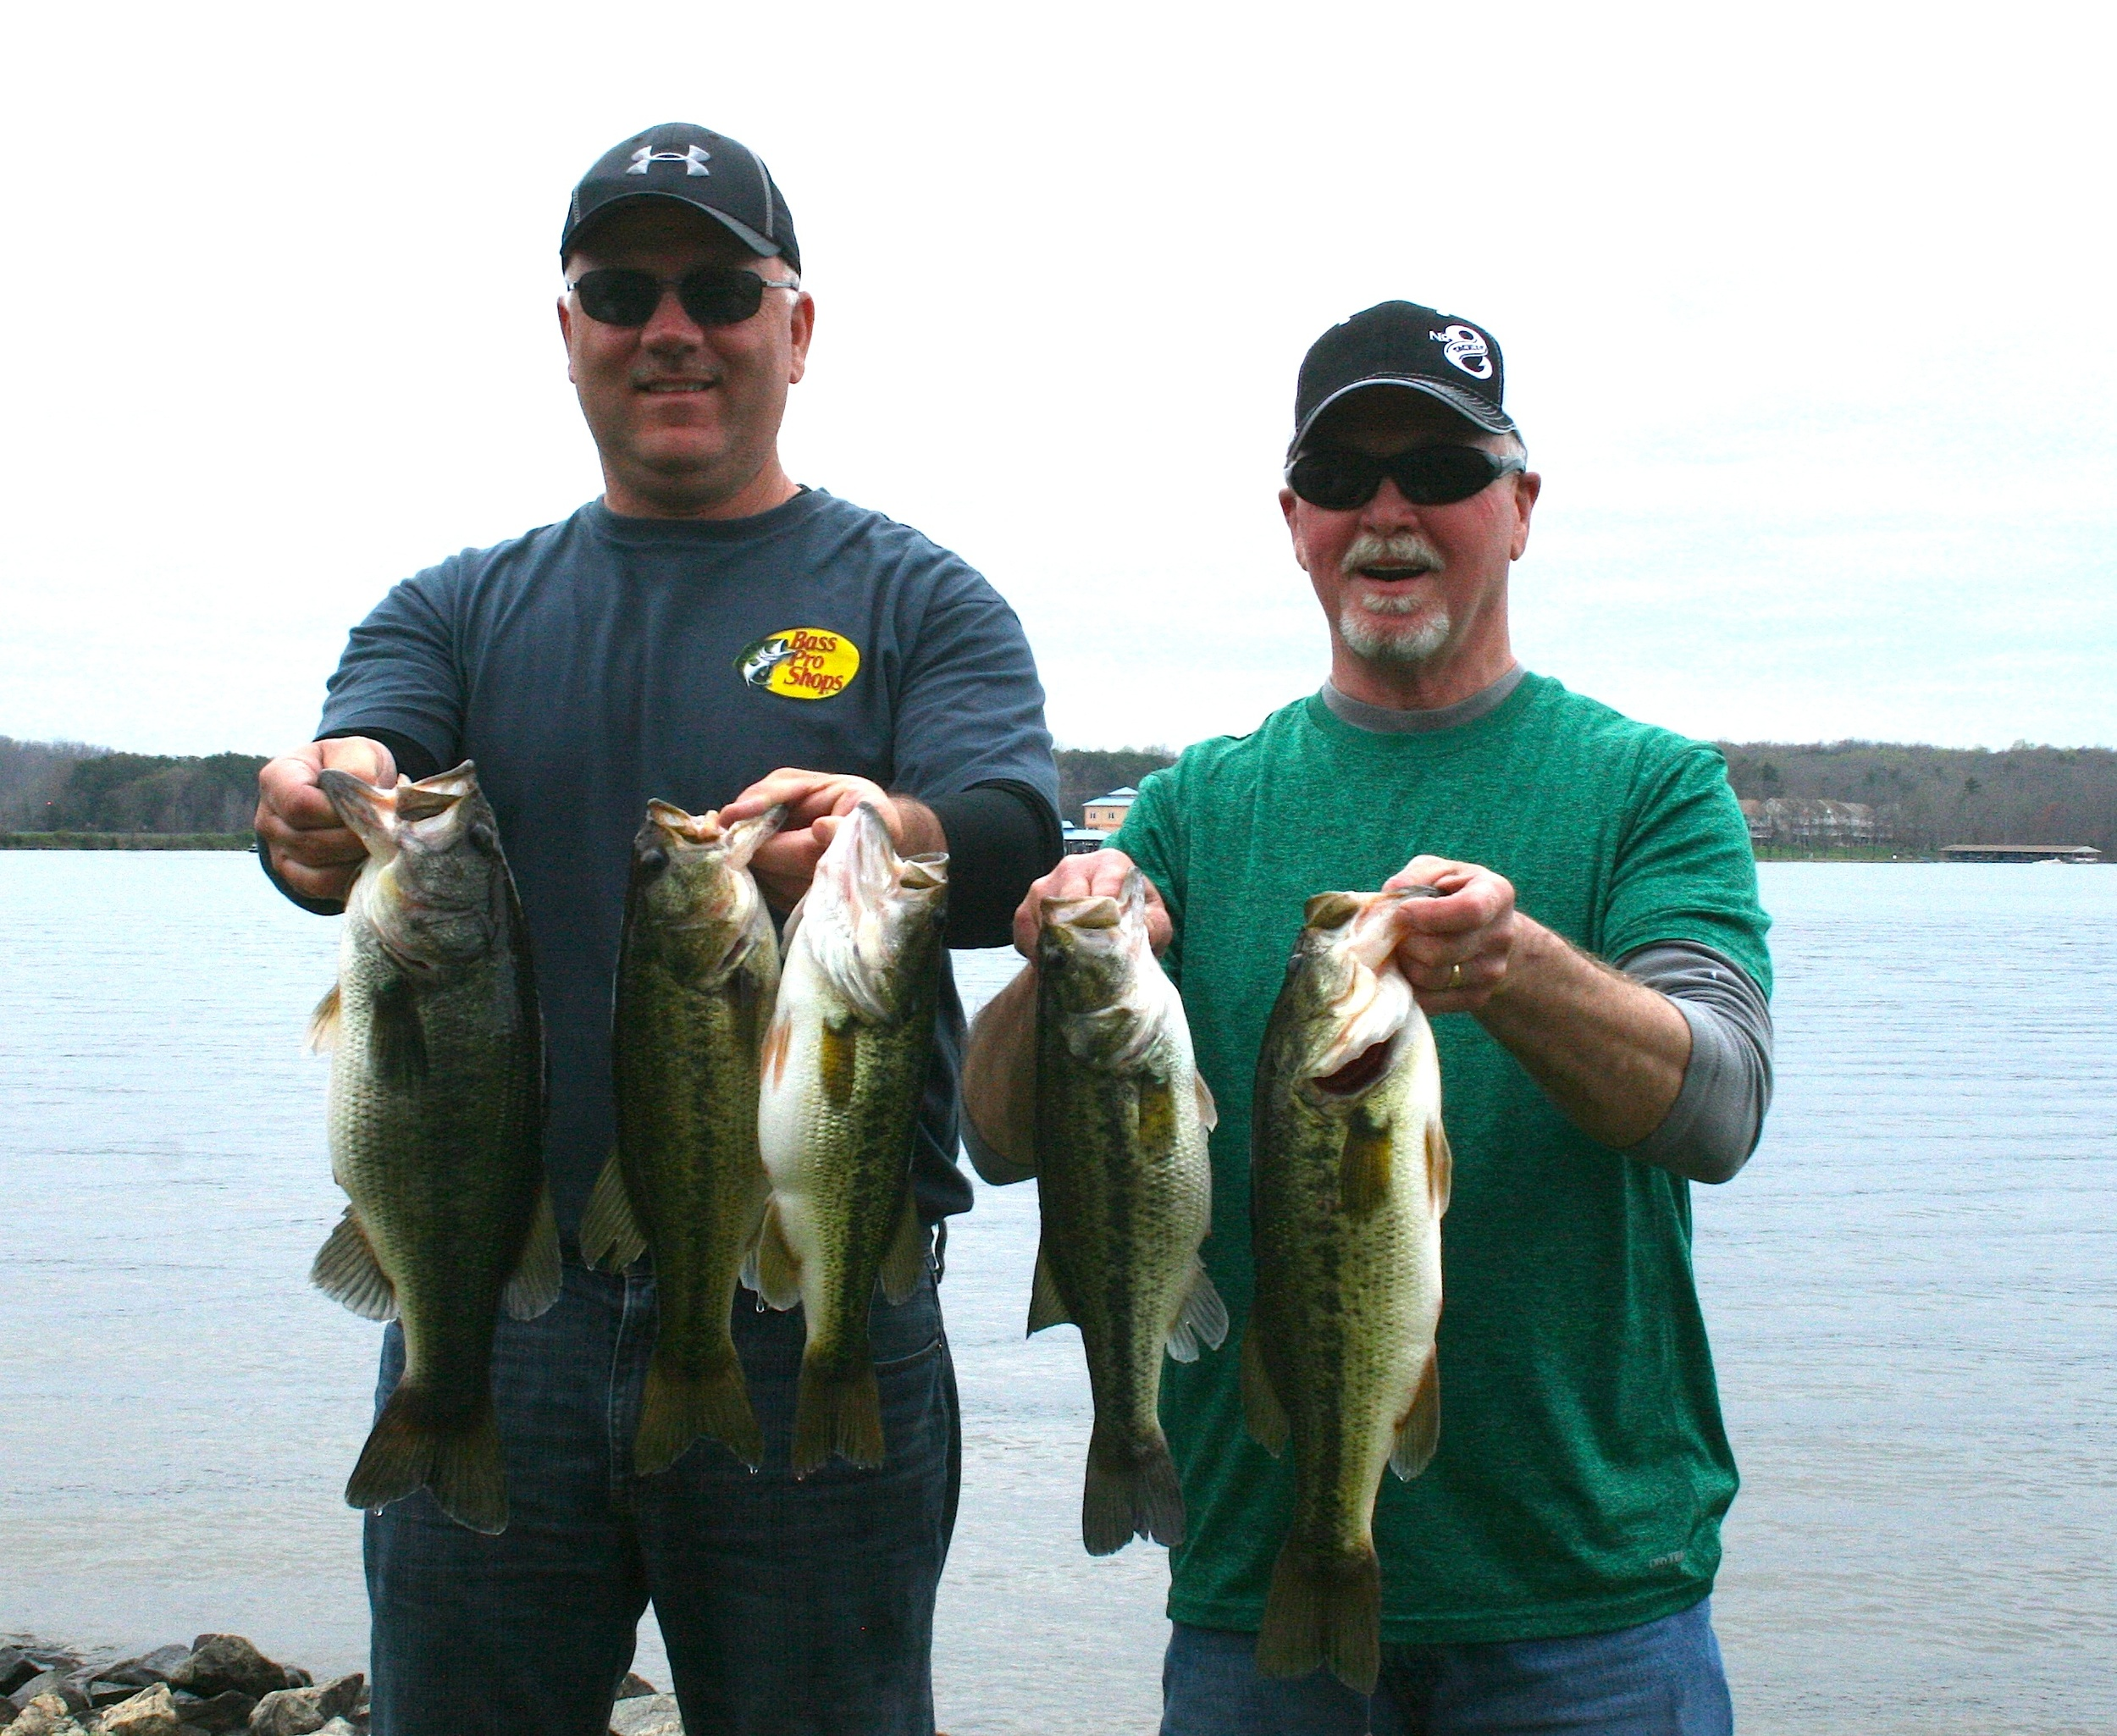 Melvin Fulk and Bill Seal Second Place 14.52 lbs